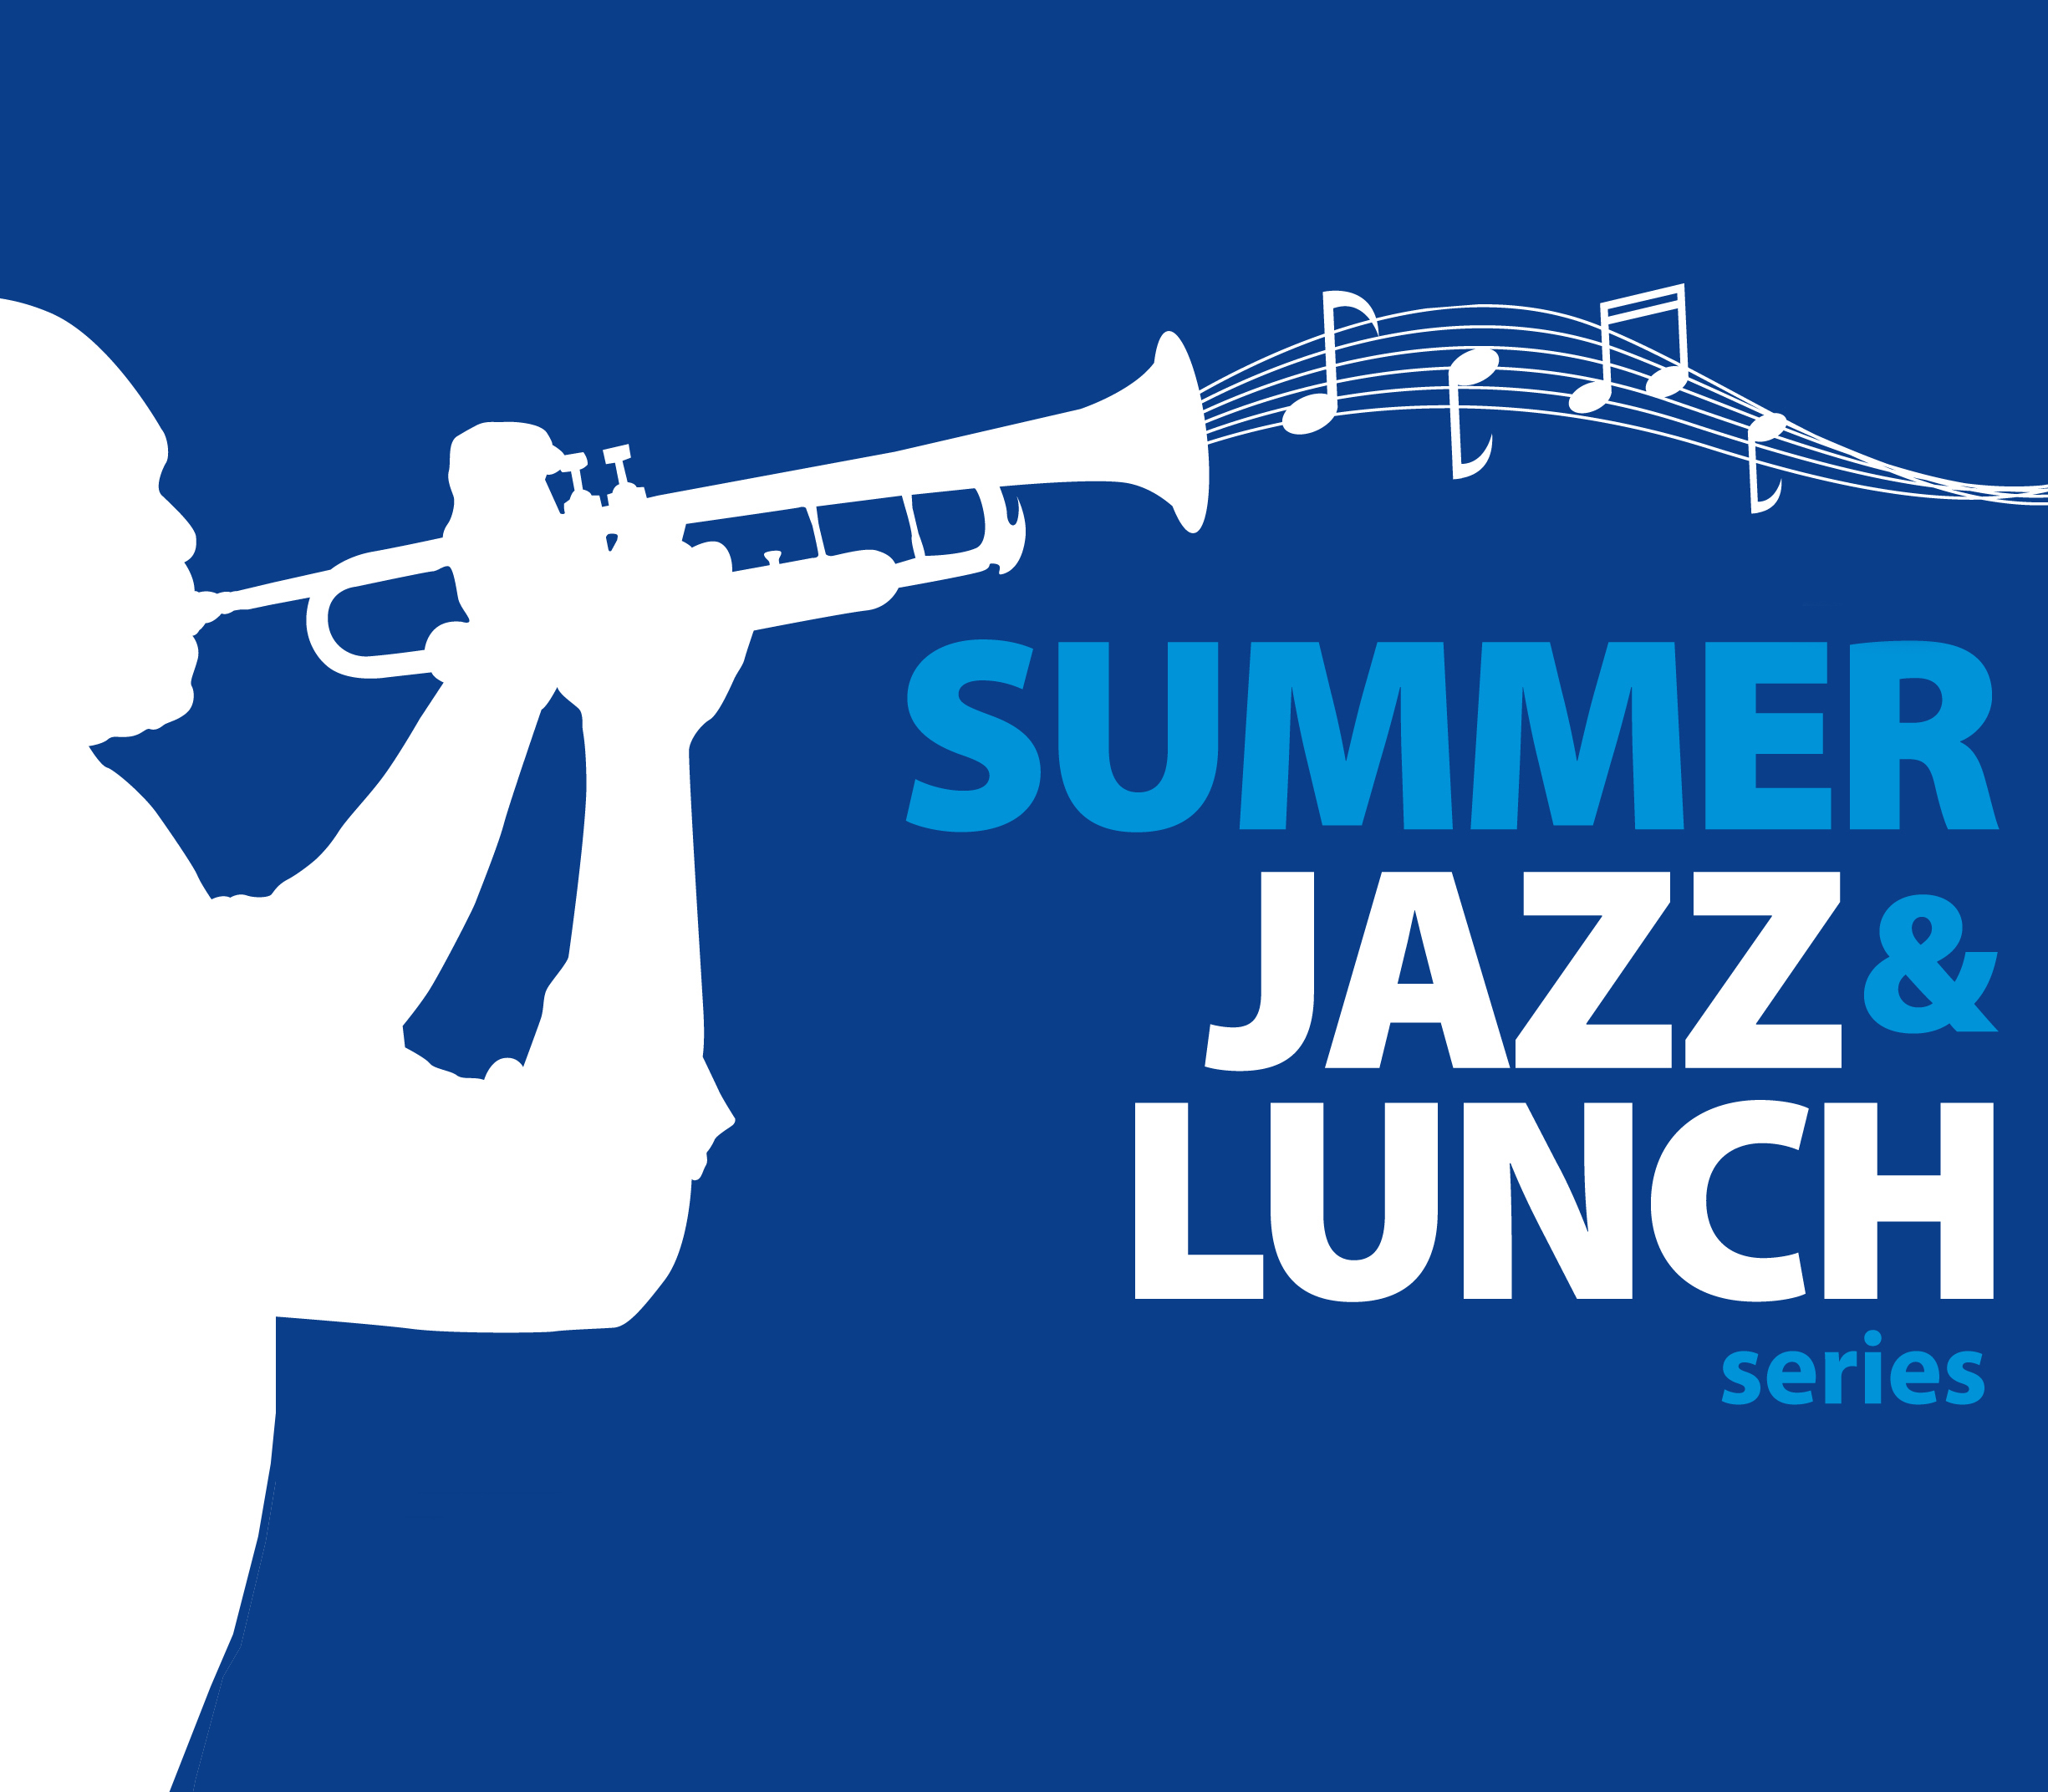 Summer Jazz Concert & Lunch: Jim Cullum Jazz Band